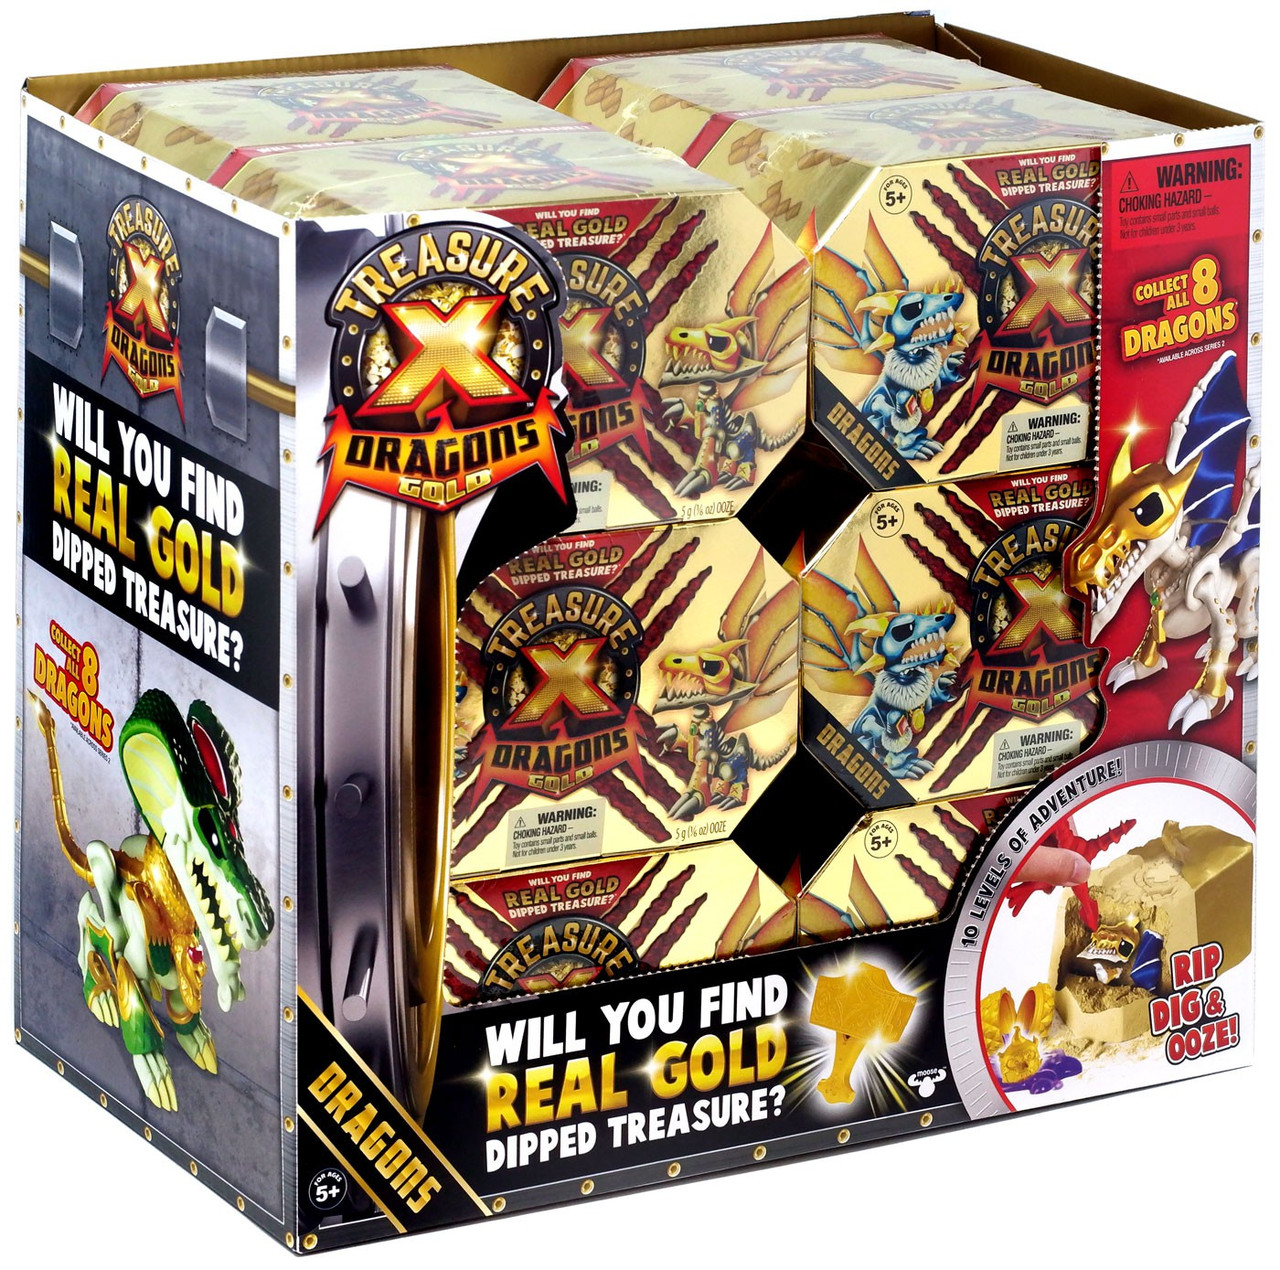 LoT of 2 Treasure X Adventure Blind Mystery Pack 10 Levels of Adventure